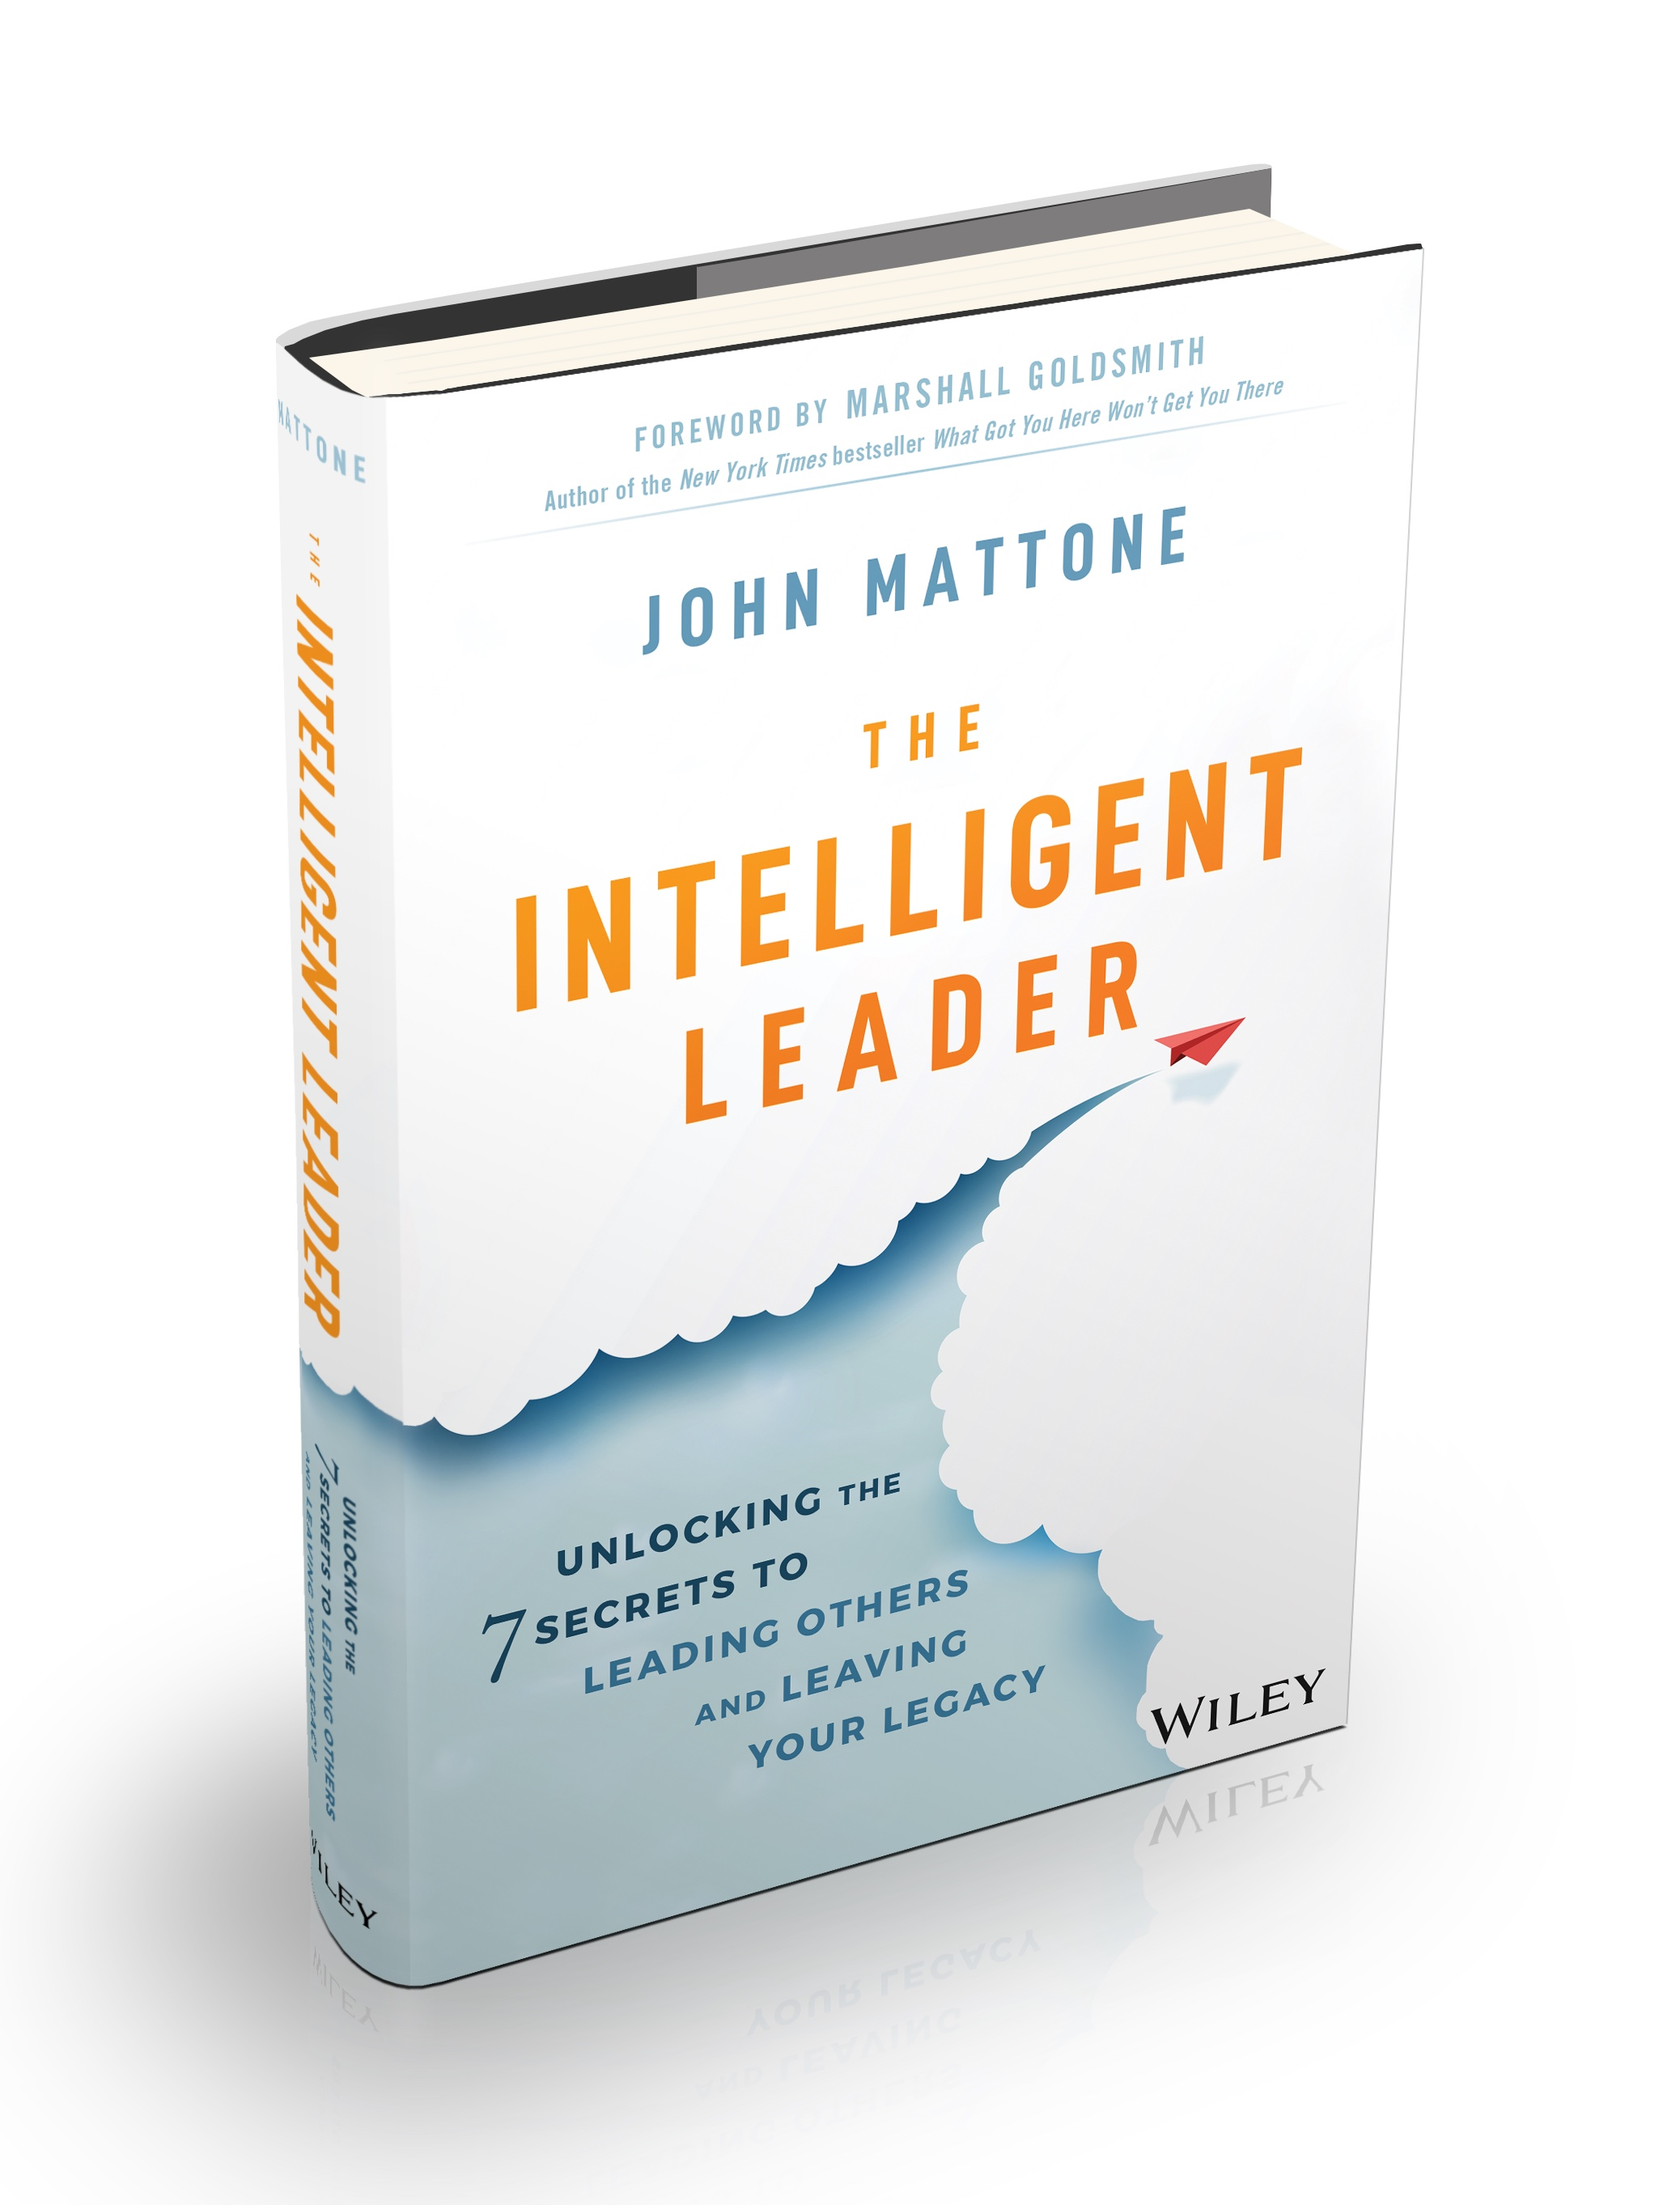 Mattone latest book, The Intelligent Leader. Unlocking The 7 Secrets To Leading Others & Leaving Your Legacy